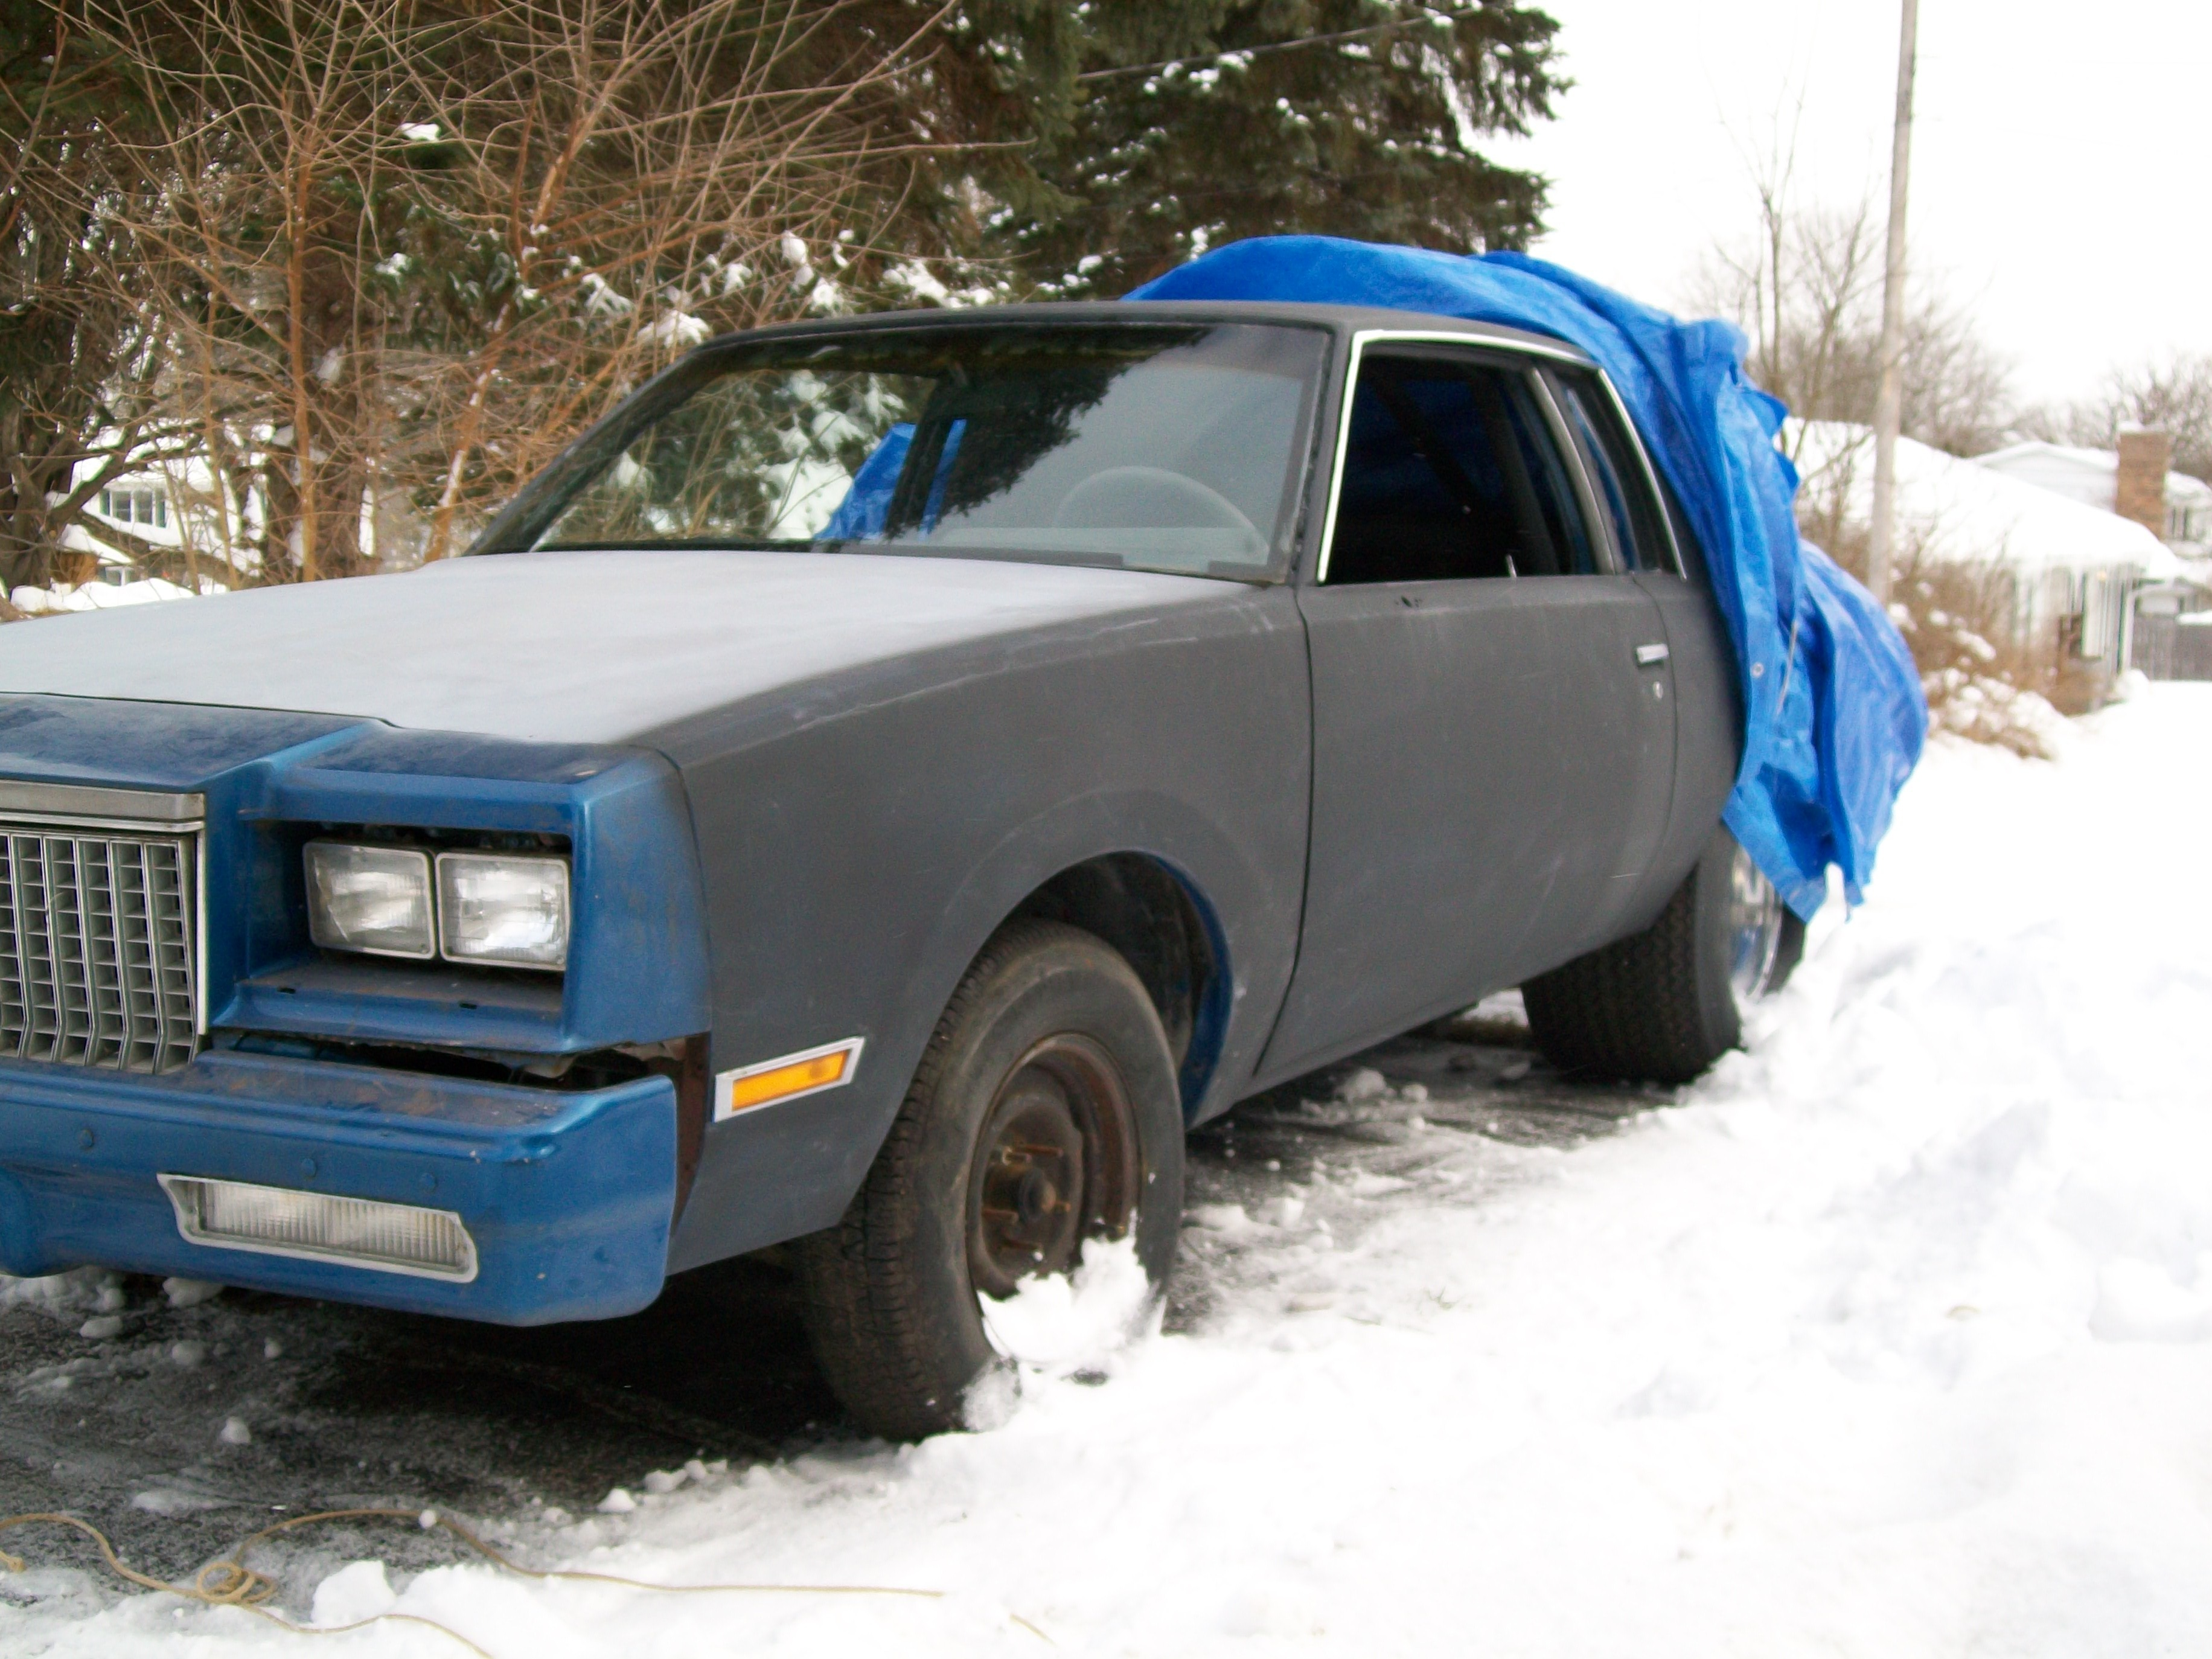 jussal9's 1980 Buick Regal